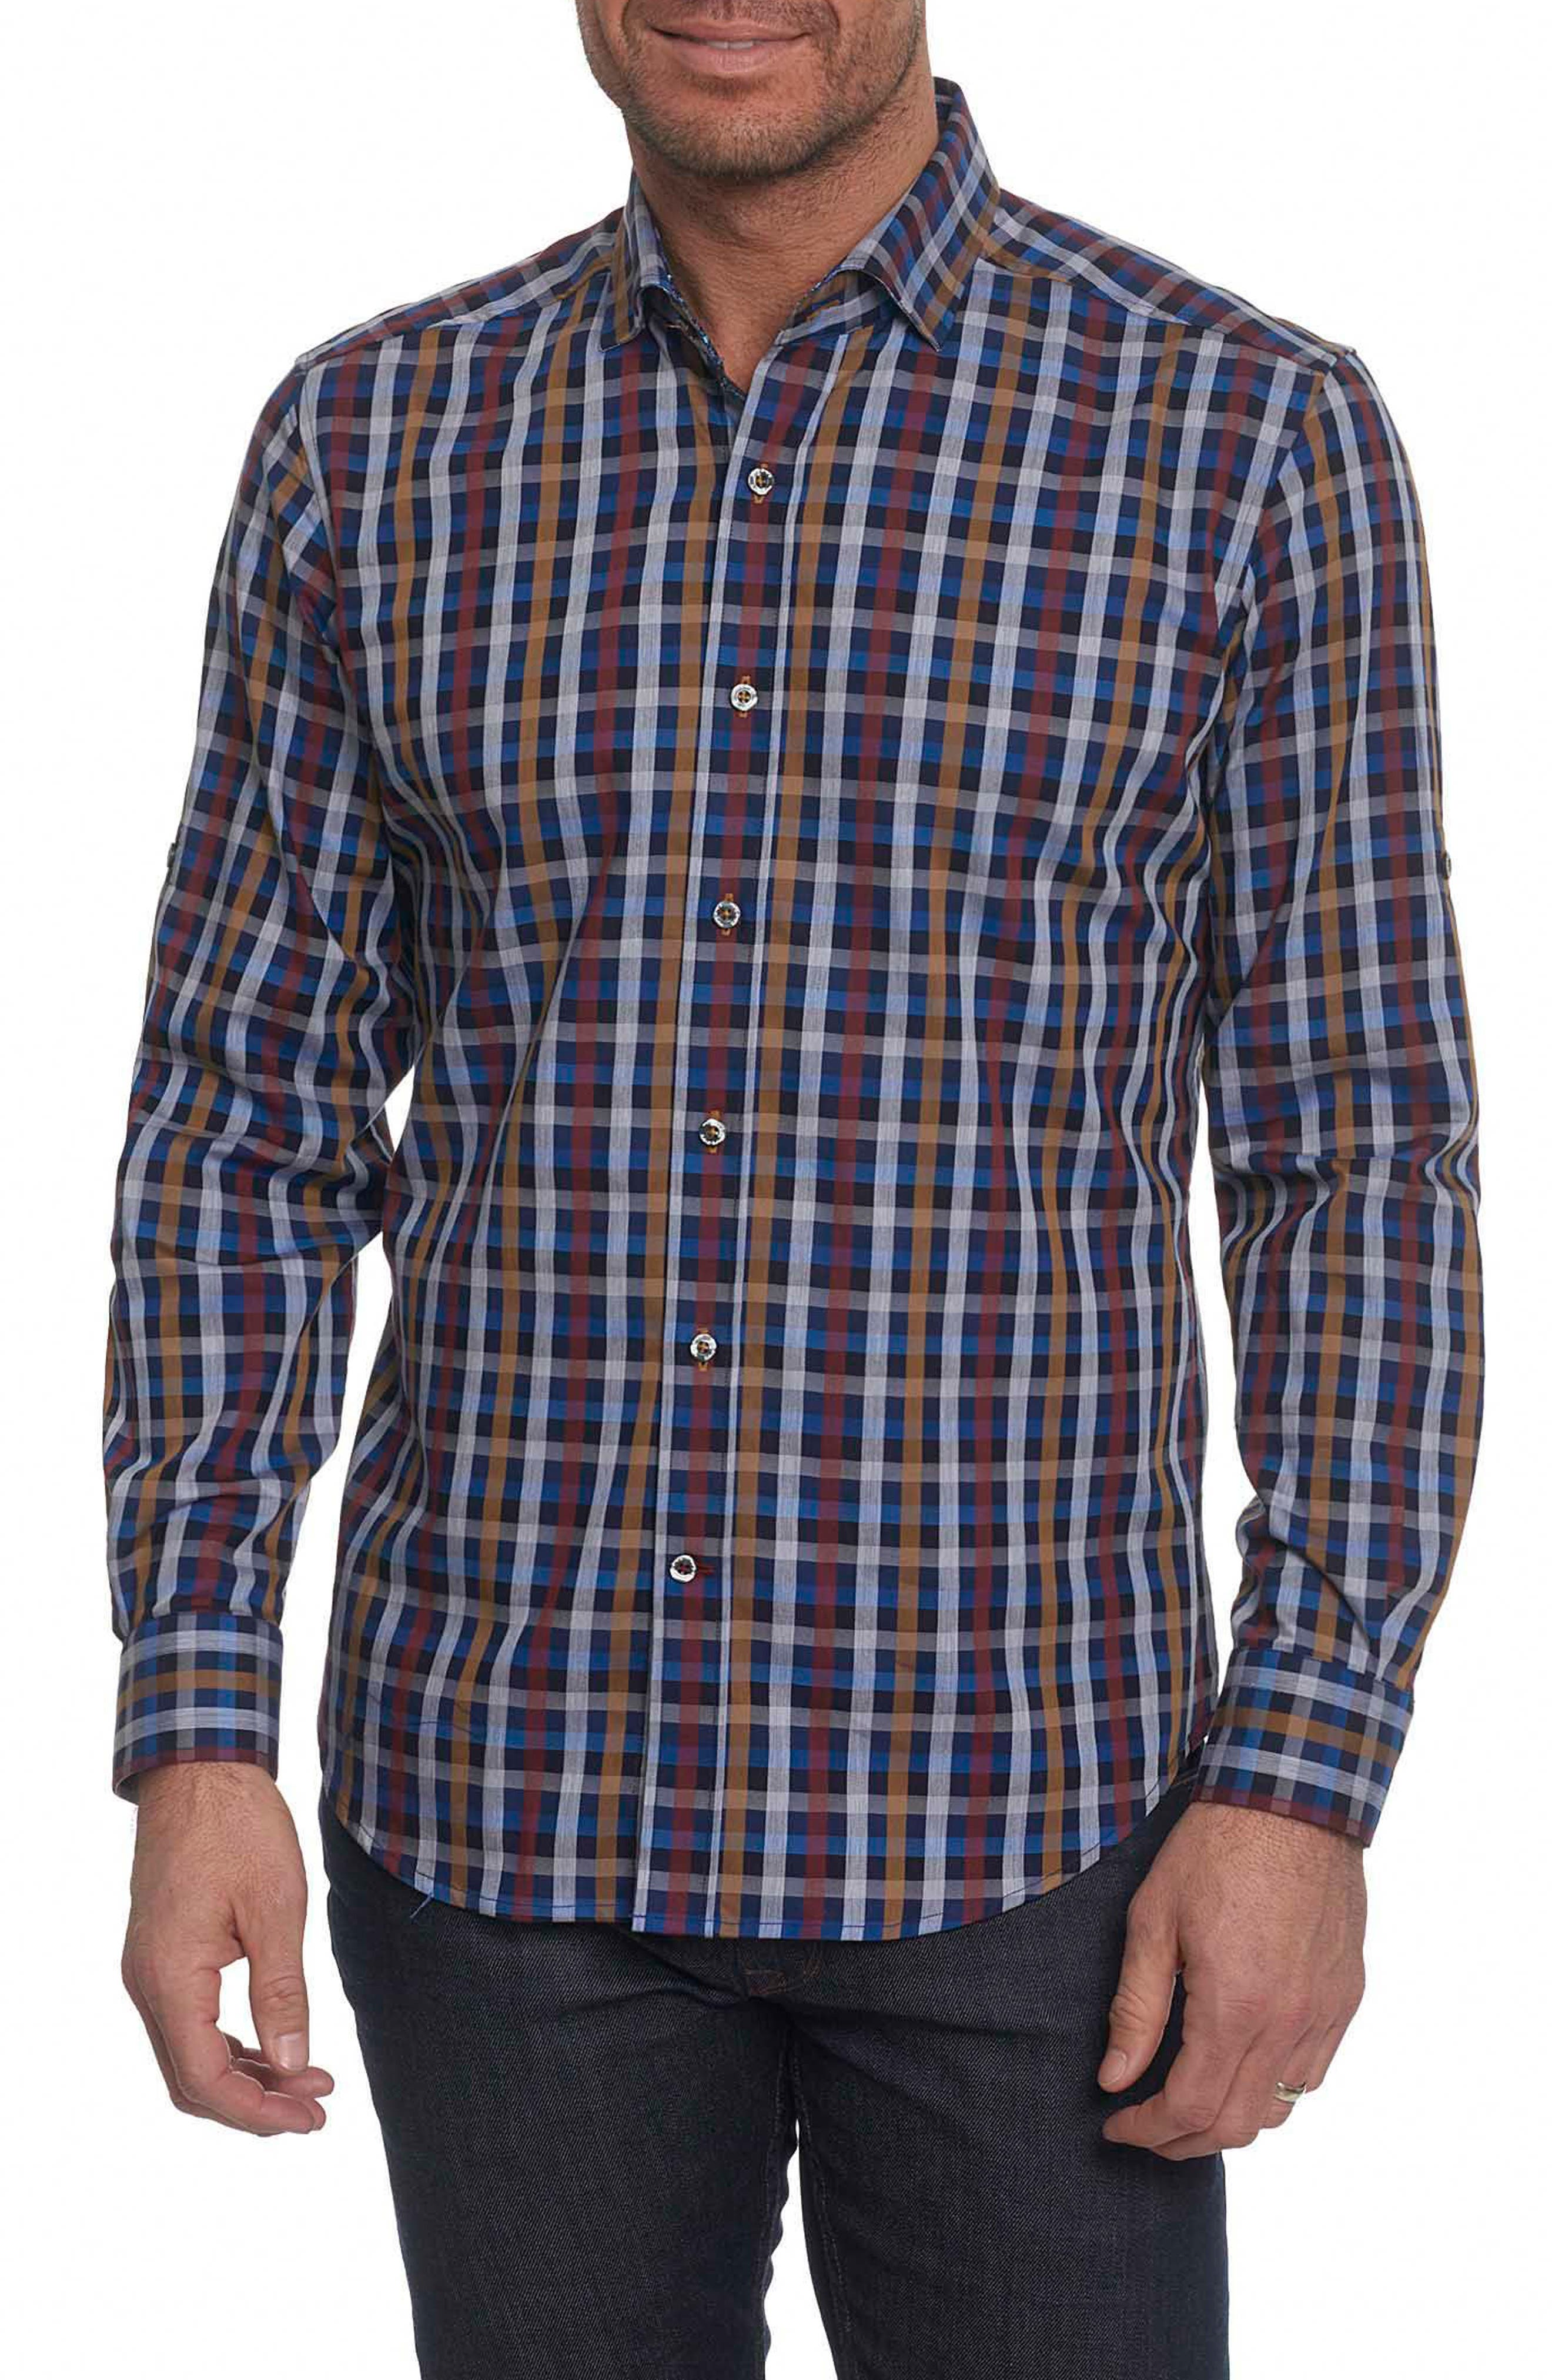 Carsons Tailored Fit Check Sport Shirt,                             Main thumbnail 1, color,                             400